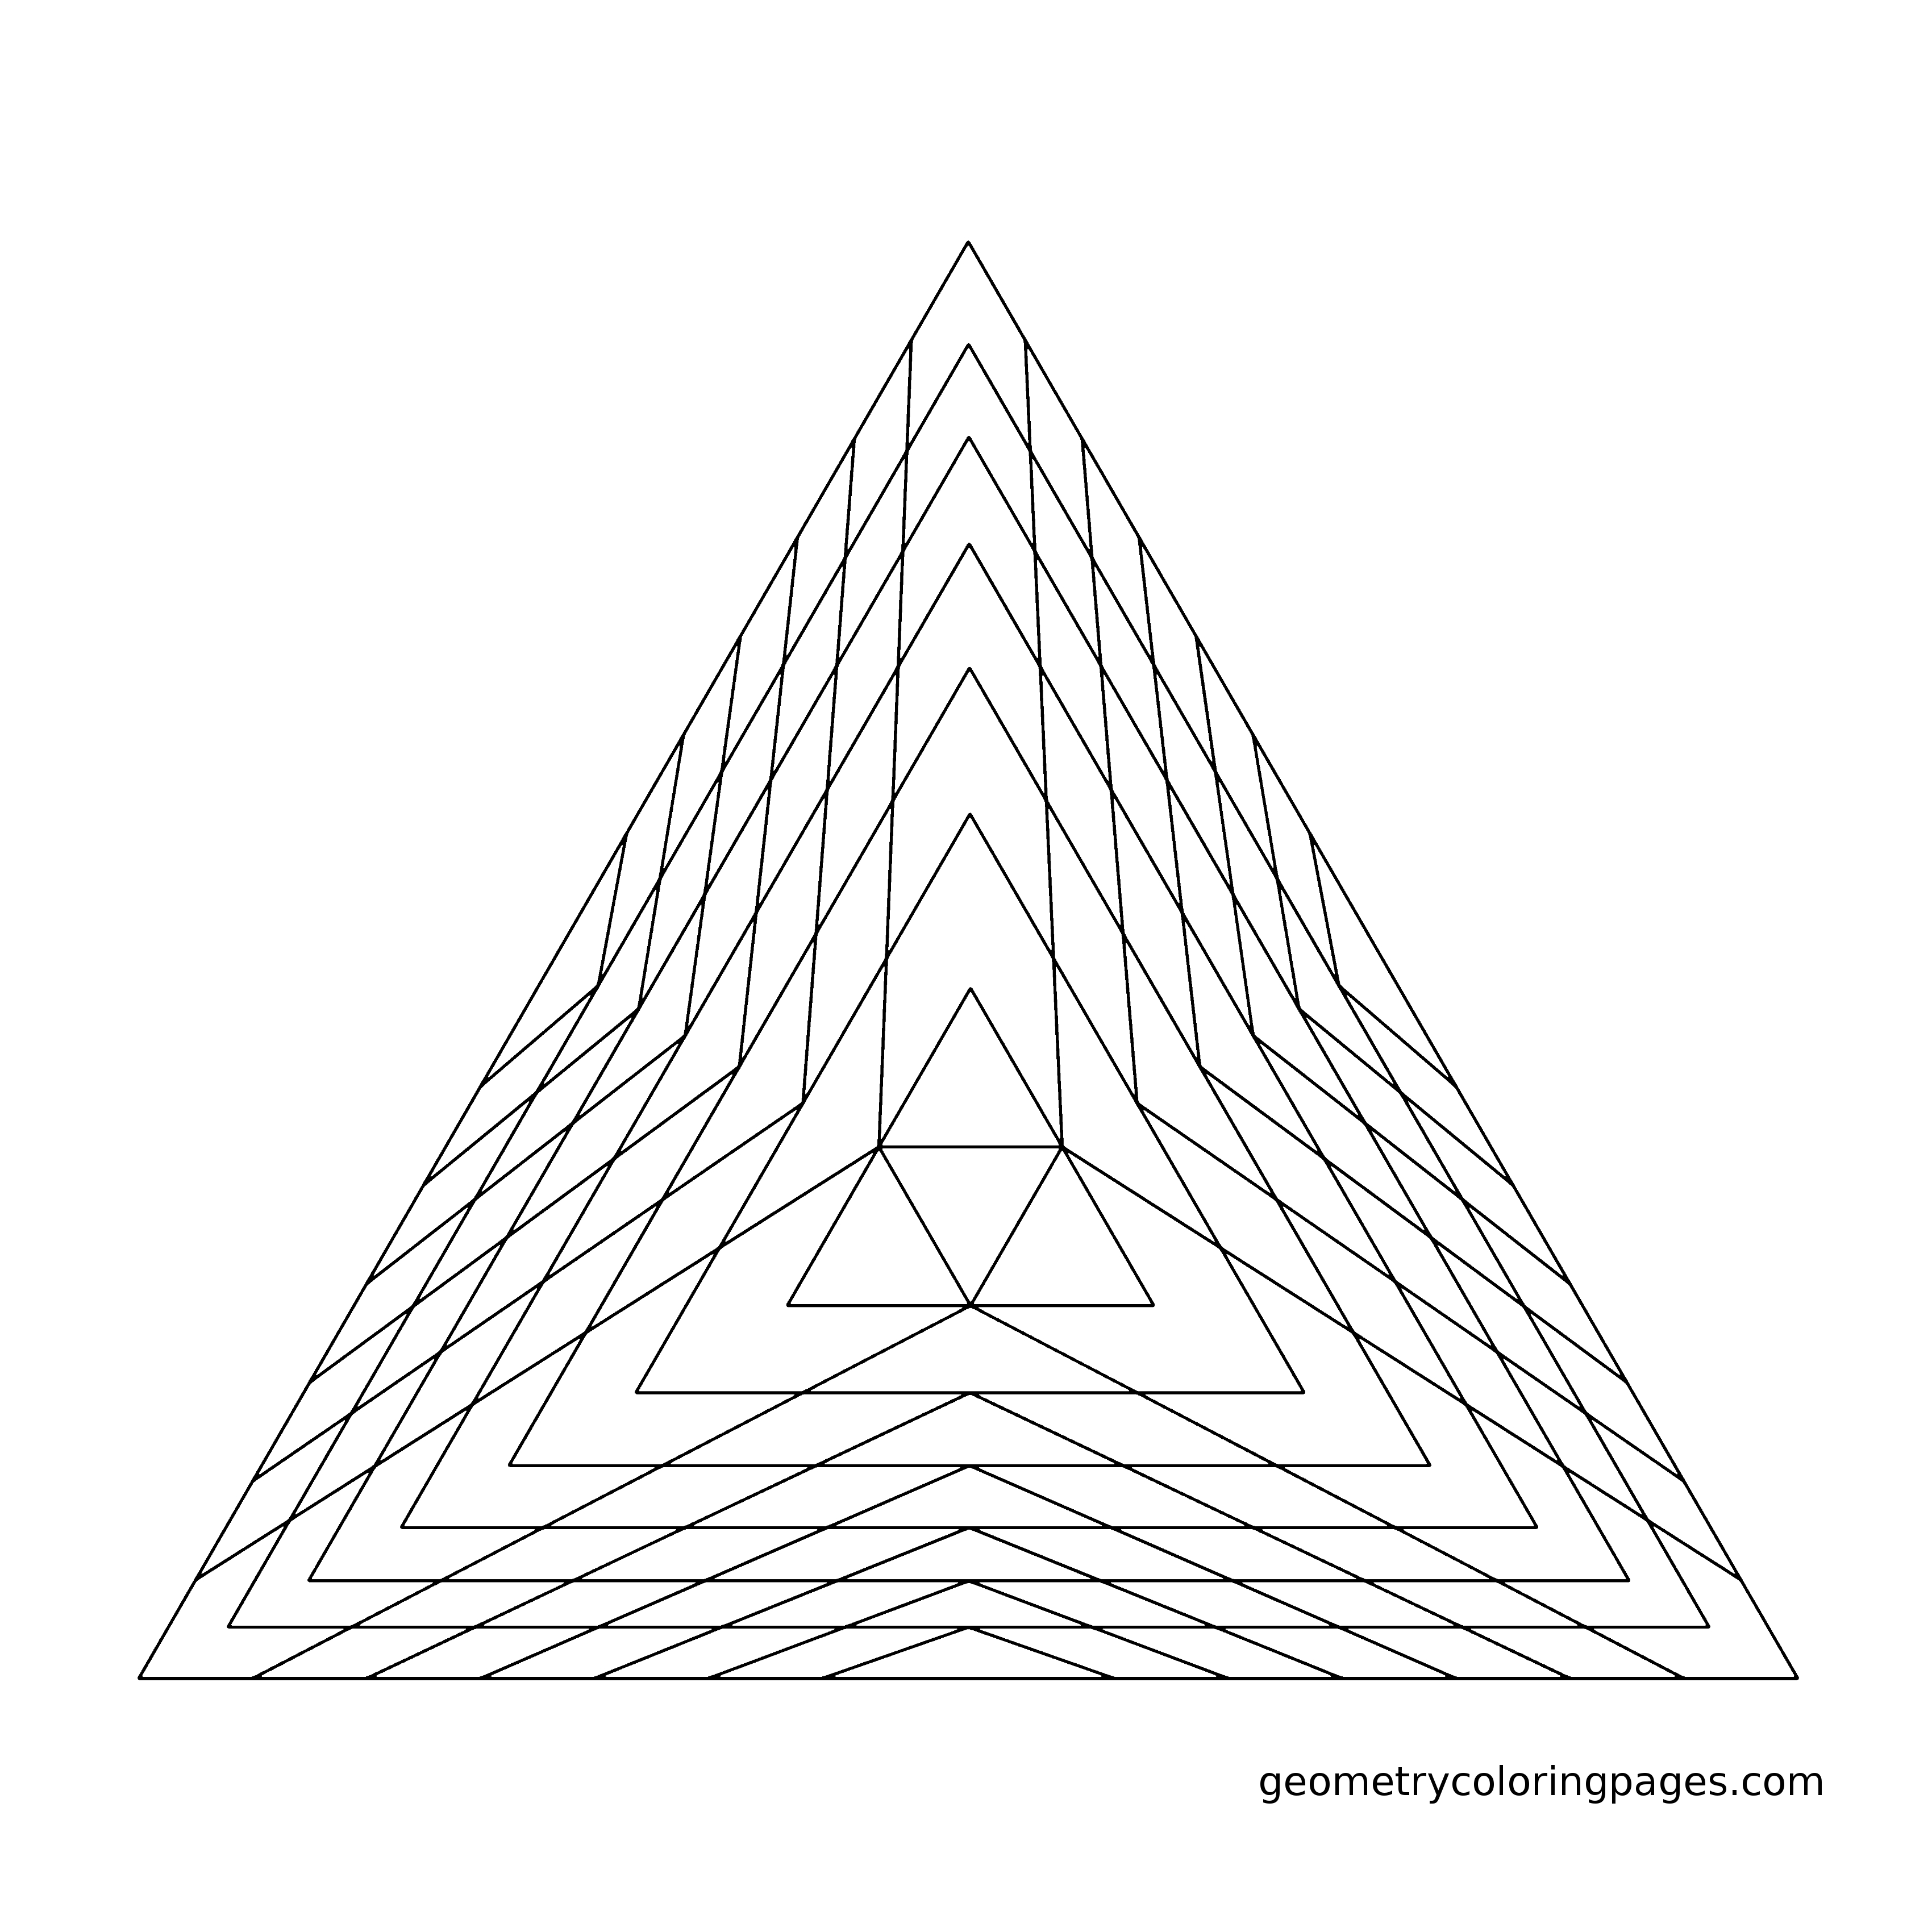 Pyramid Line Drawing at GetDrawings.com | Free for personal use ...